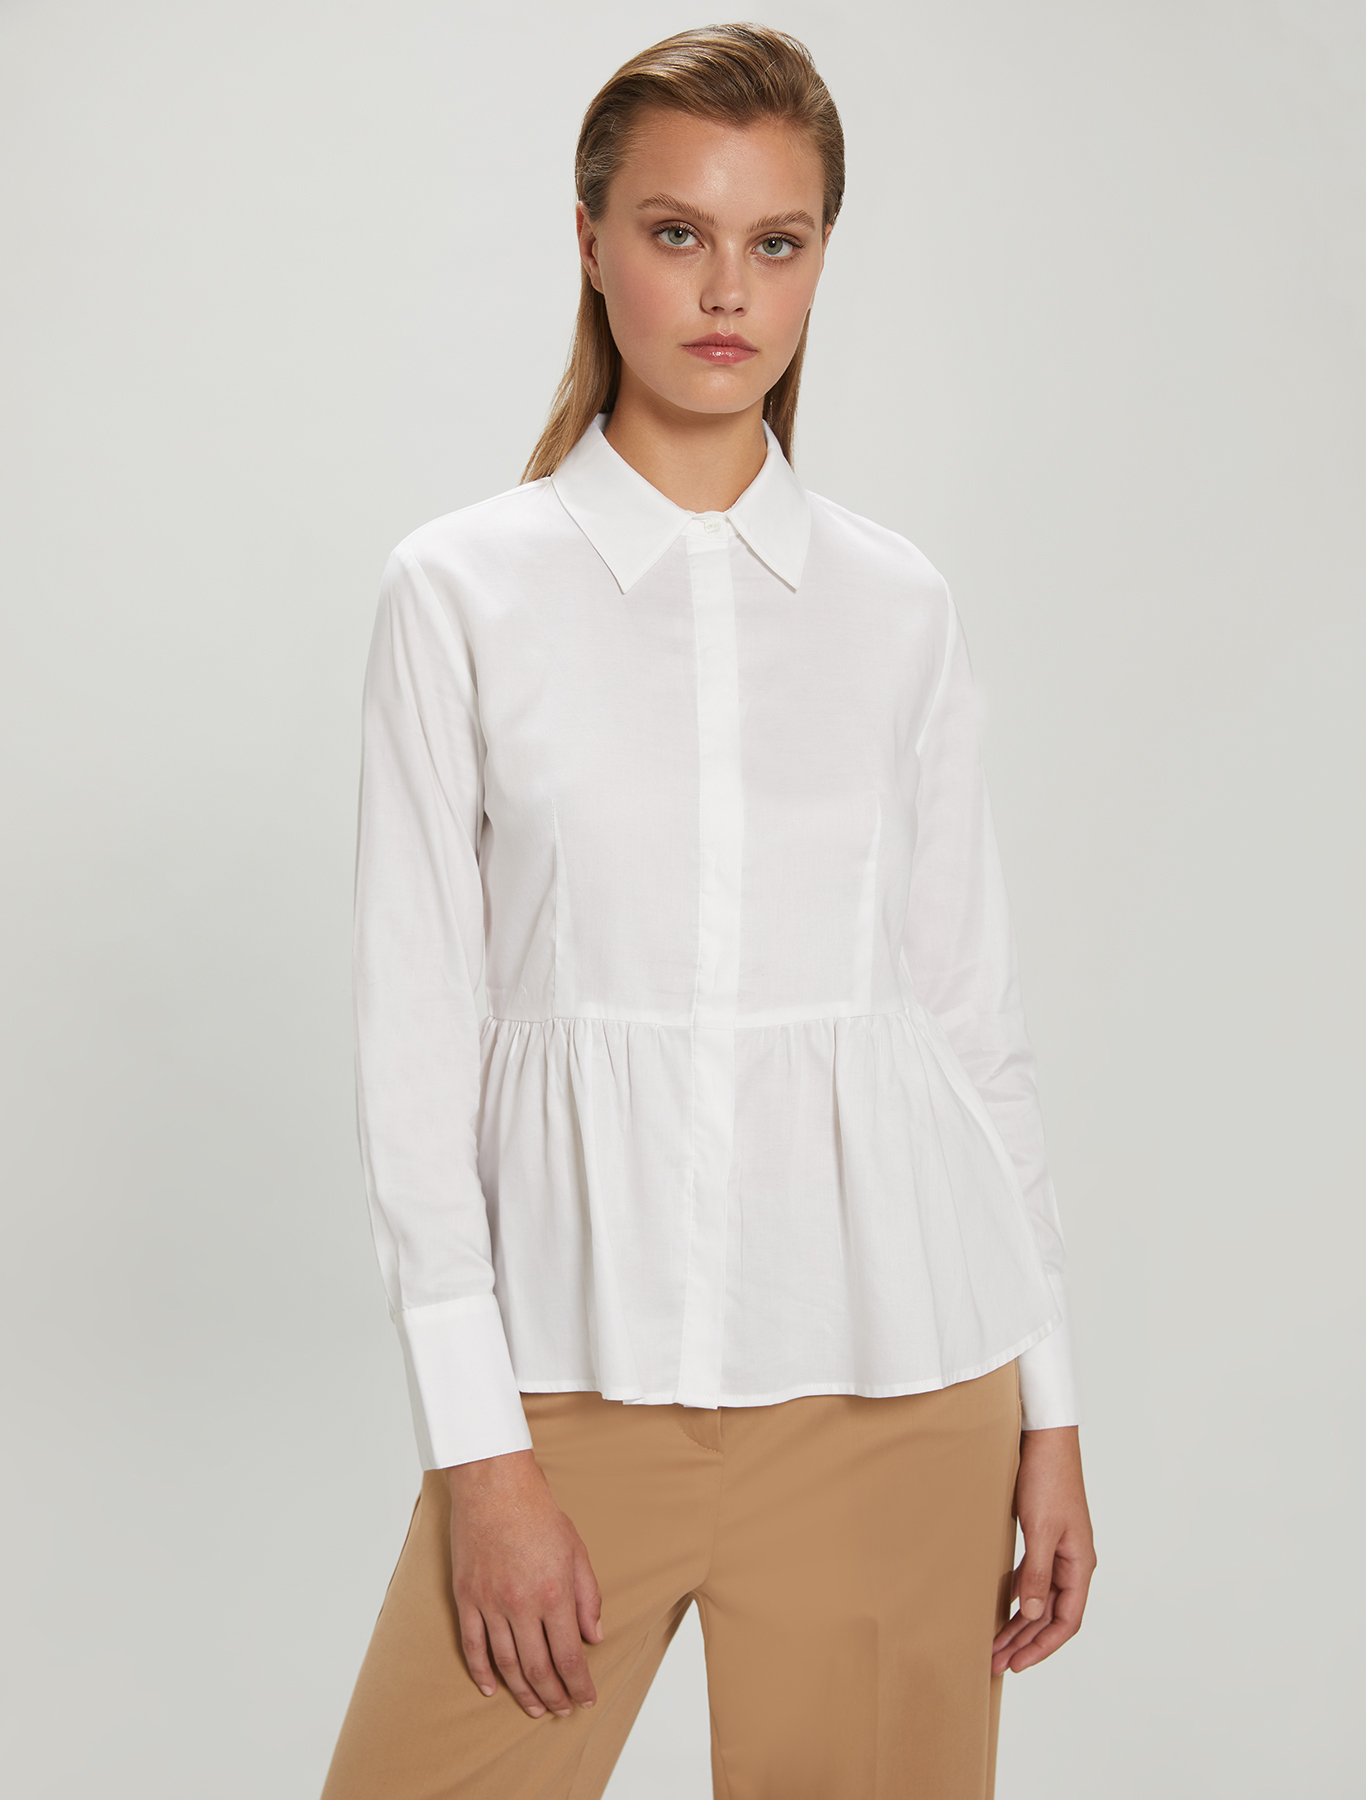 Oxford cotton shirt - optic white - pennyblack